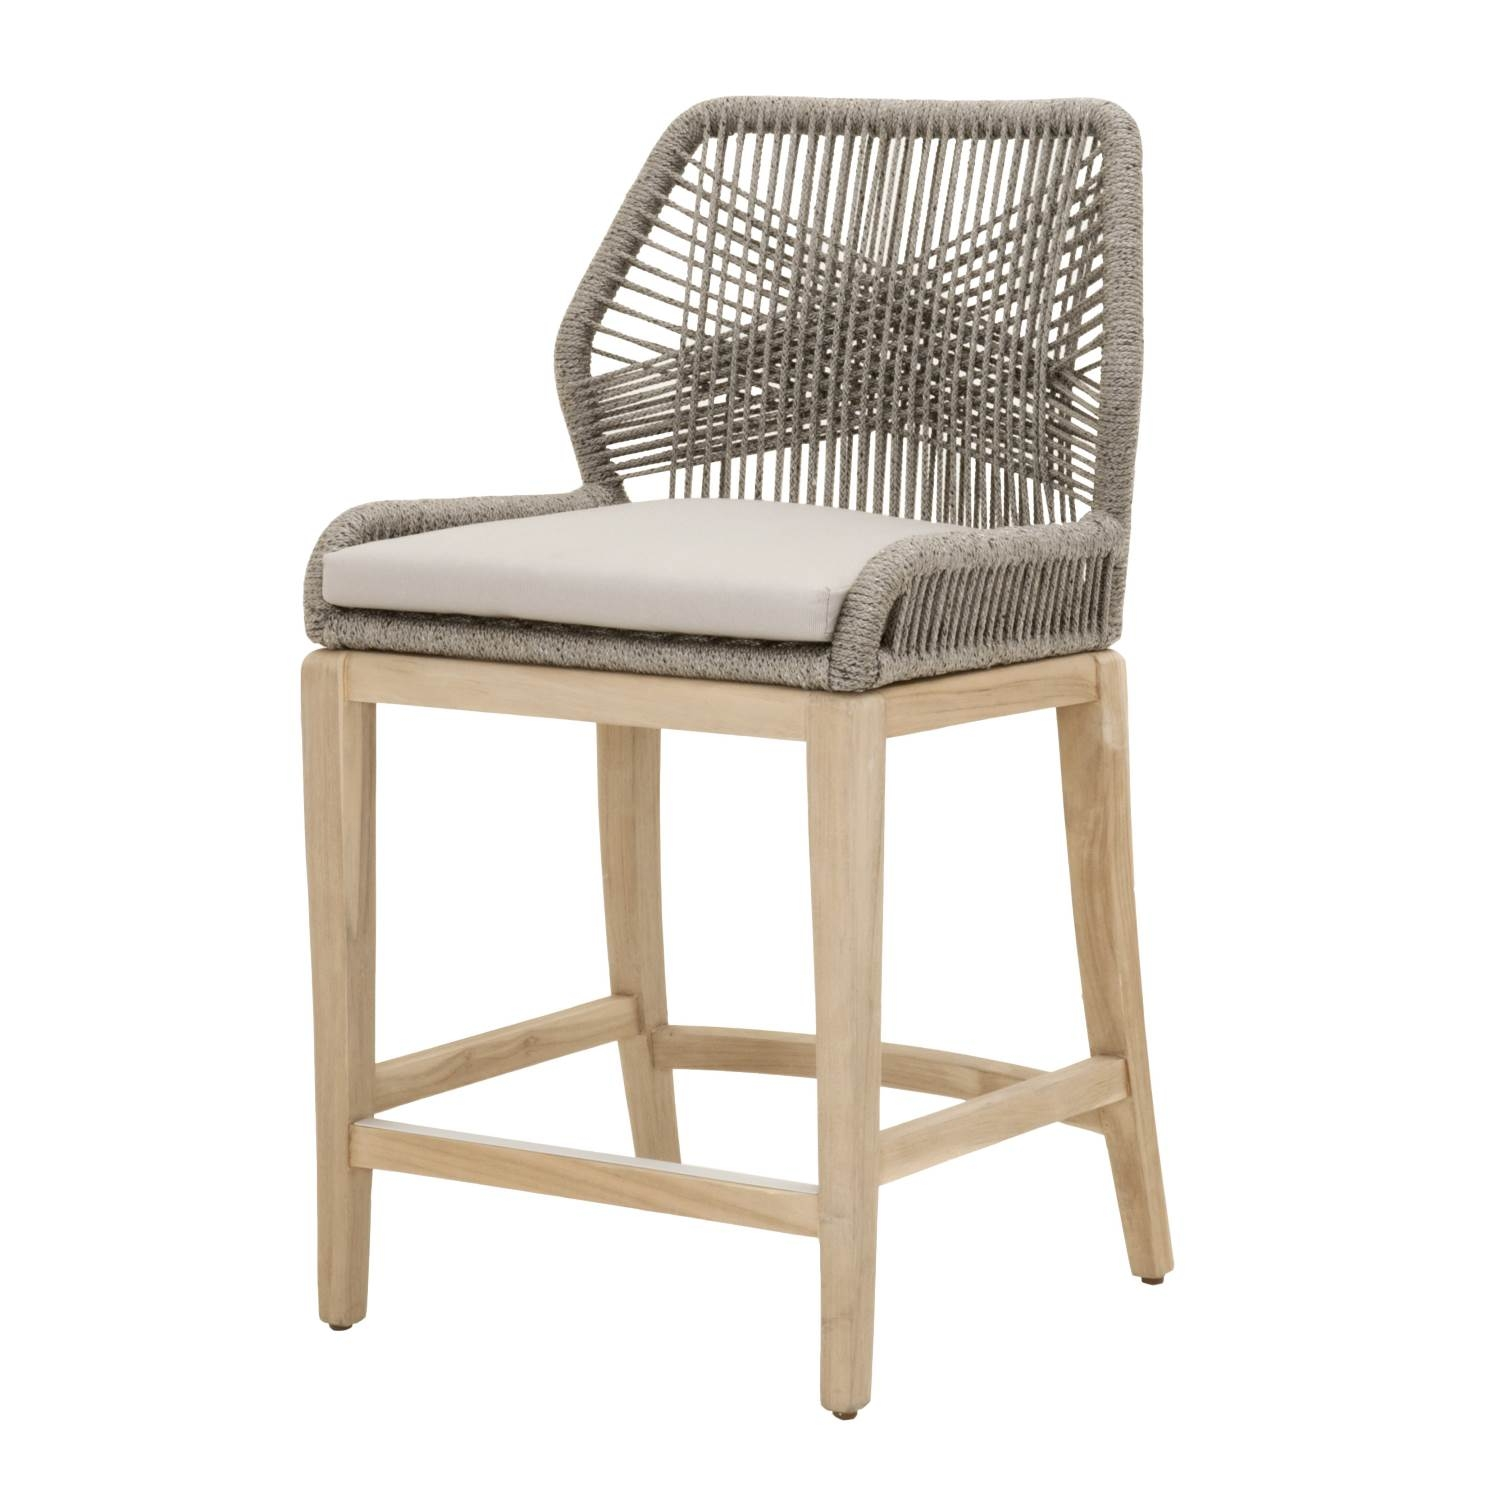 Weave Platinum Rope Outdoor Counter Stool